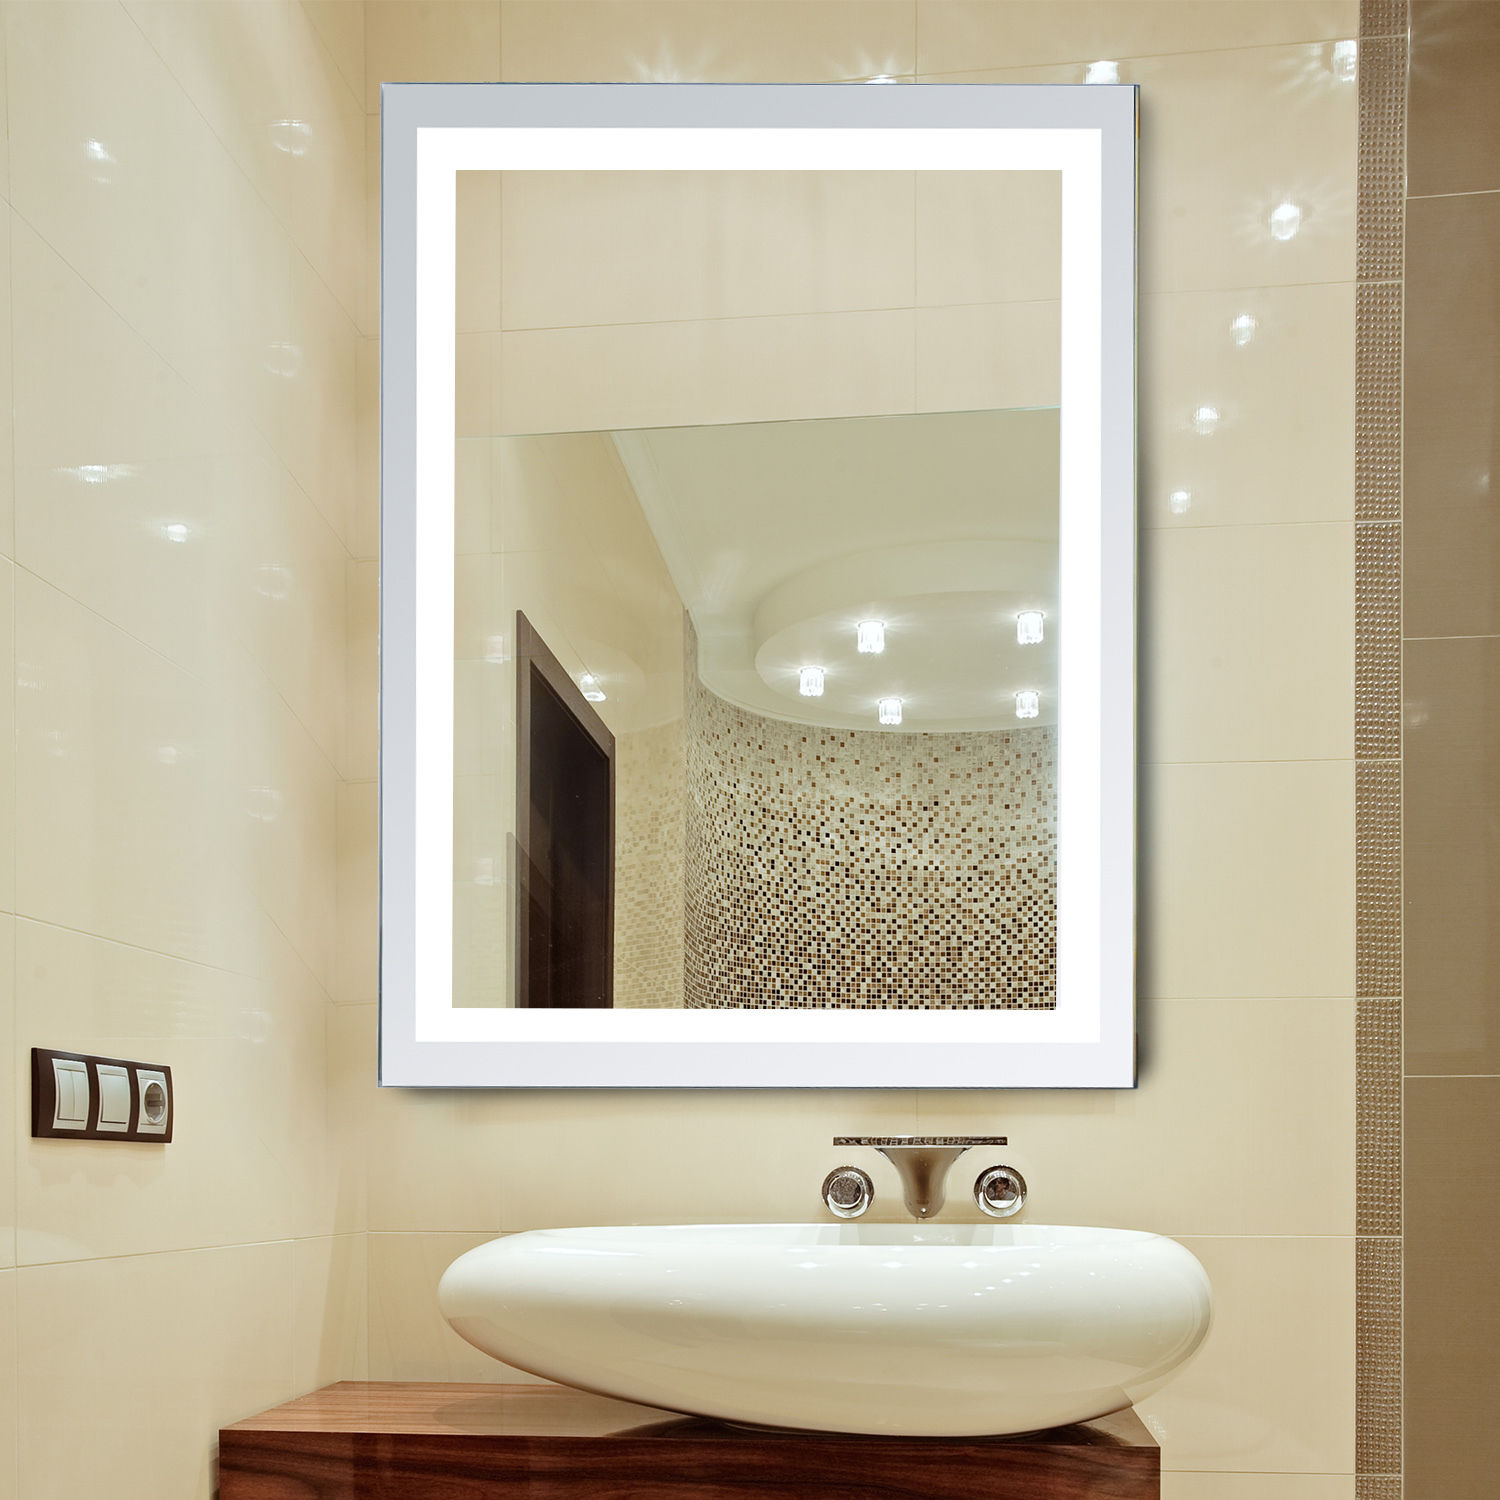 Details about LED Illuminated Bathroom Wall Mirrors with Lights Modern  Makeup Vanity Mirror